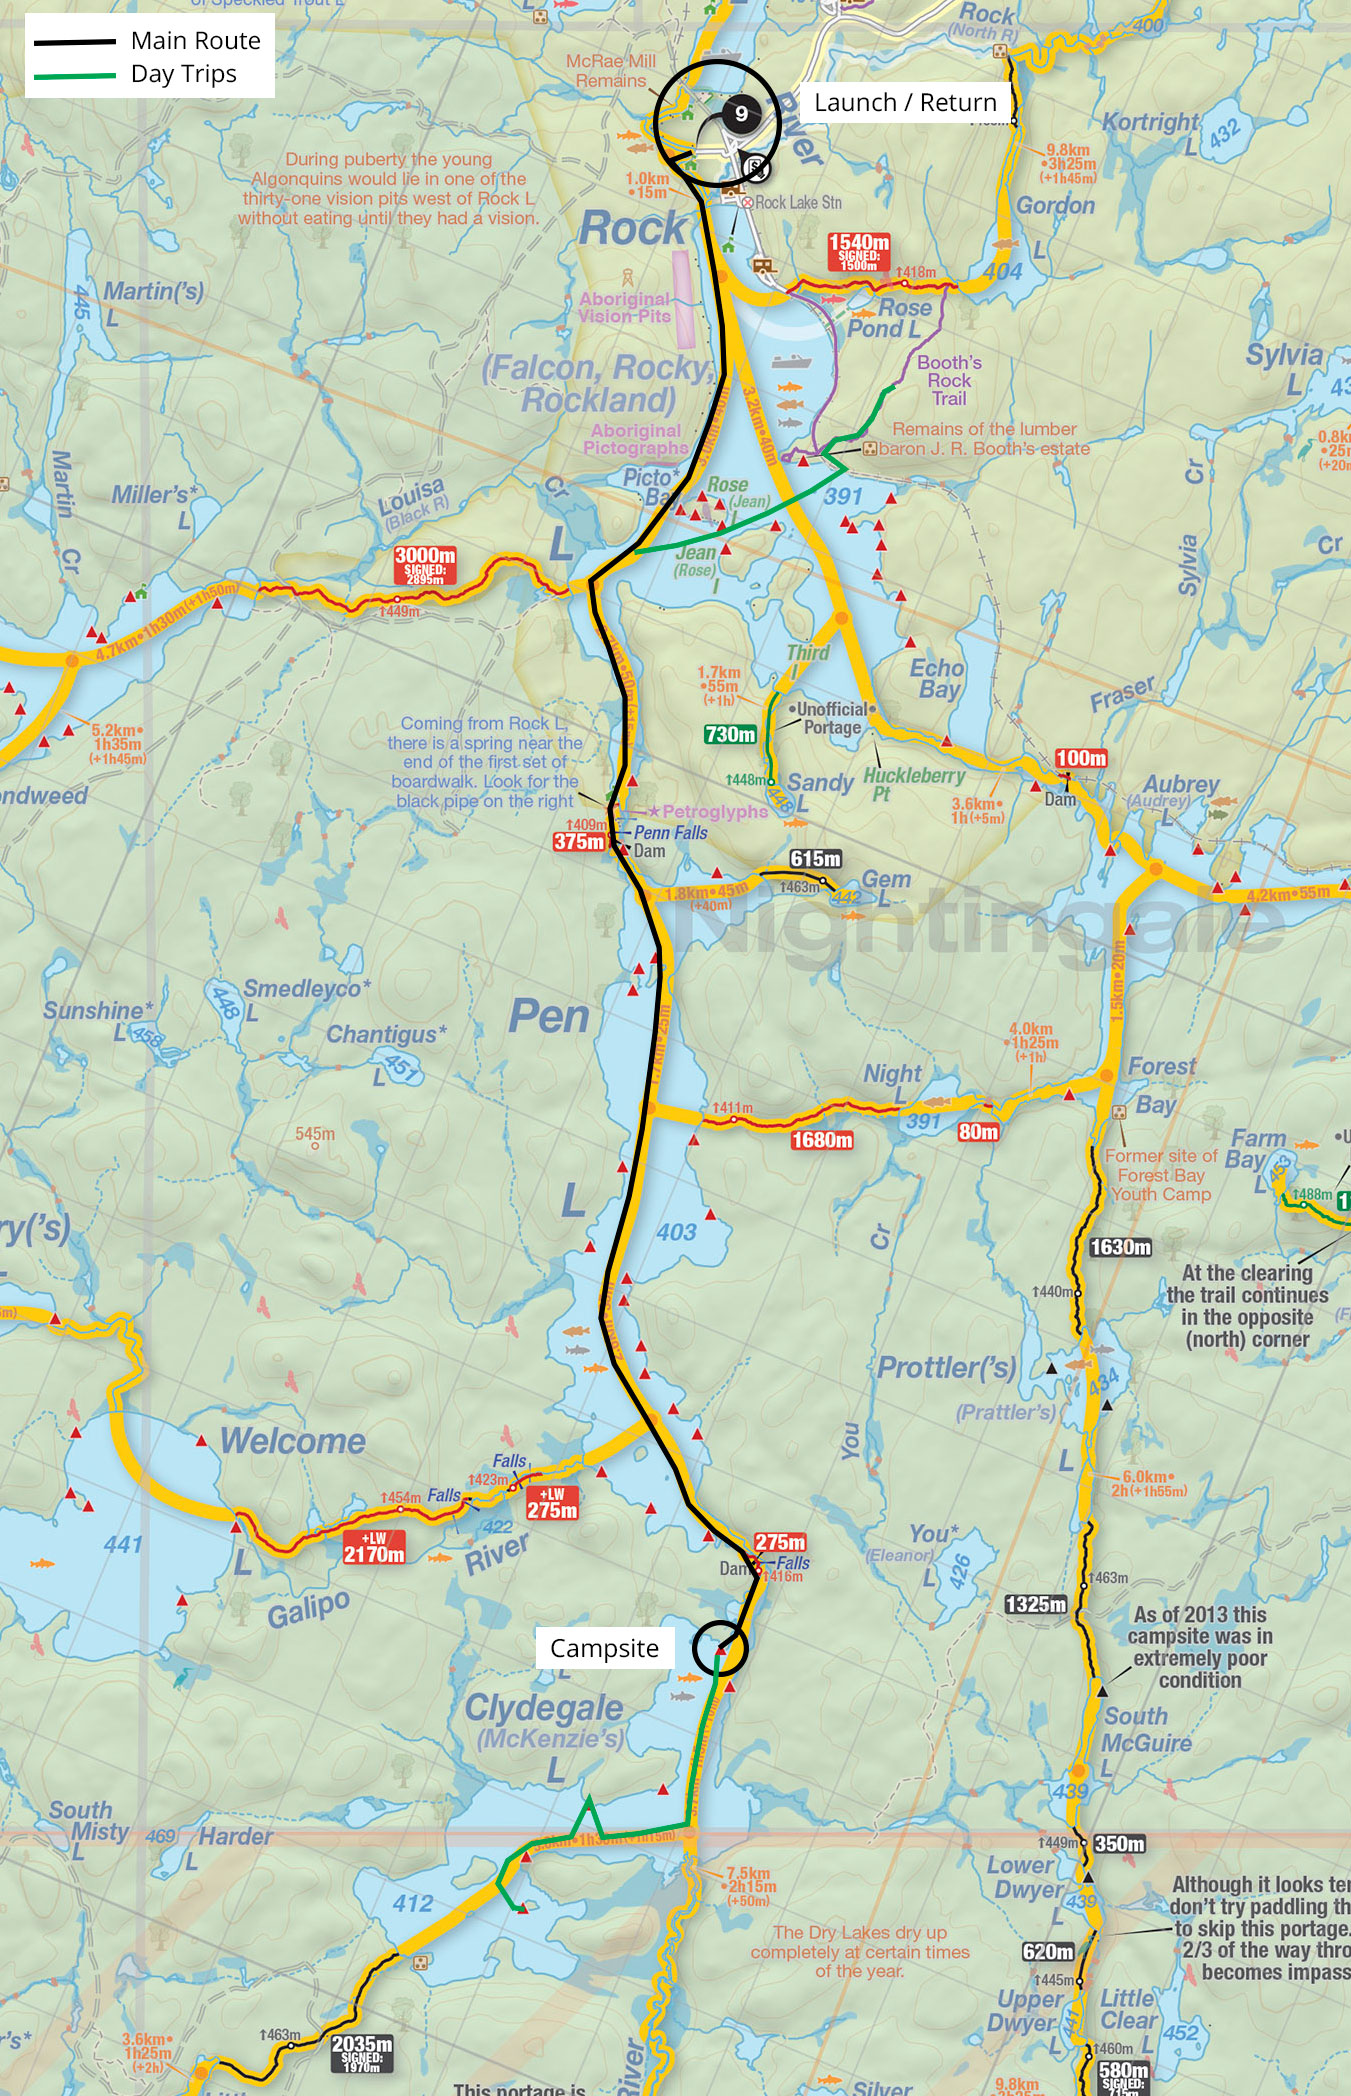 Map and trip details of my trip to Clydegale Lake in Algonquin Park